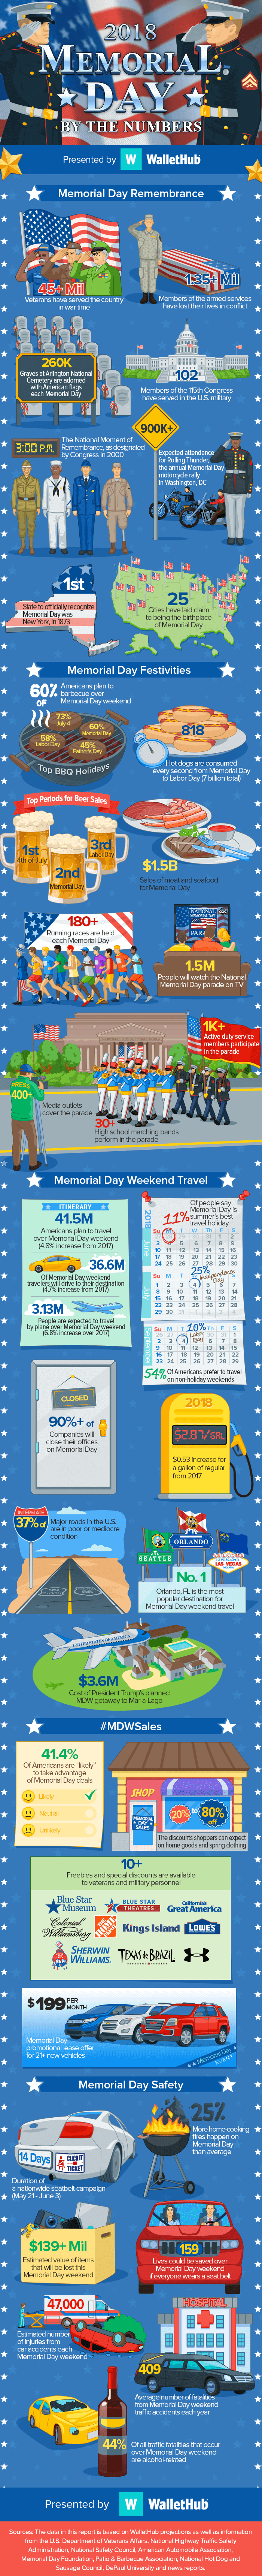 Memorial Day 2018 -- Facts